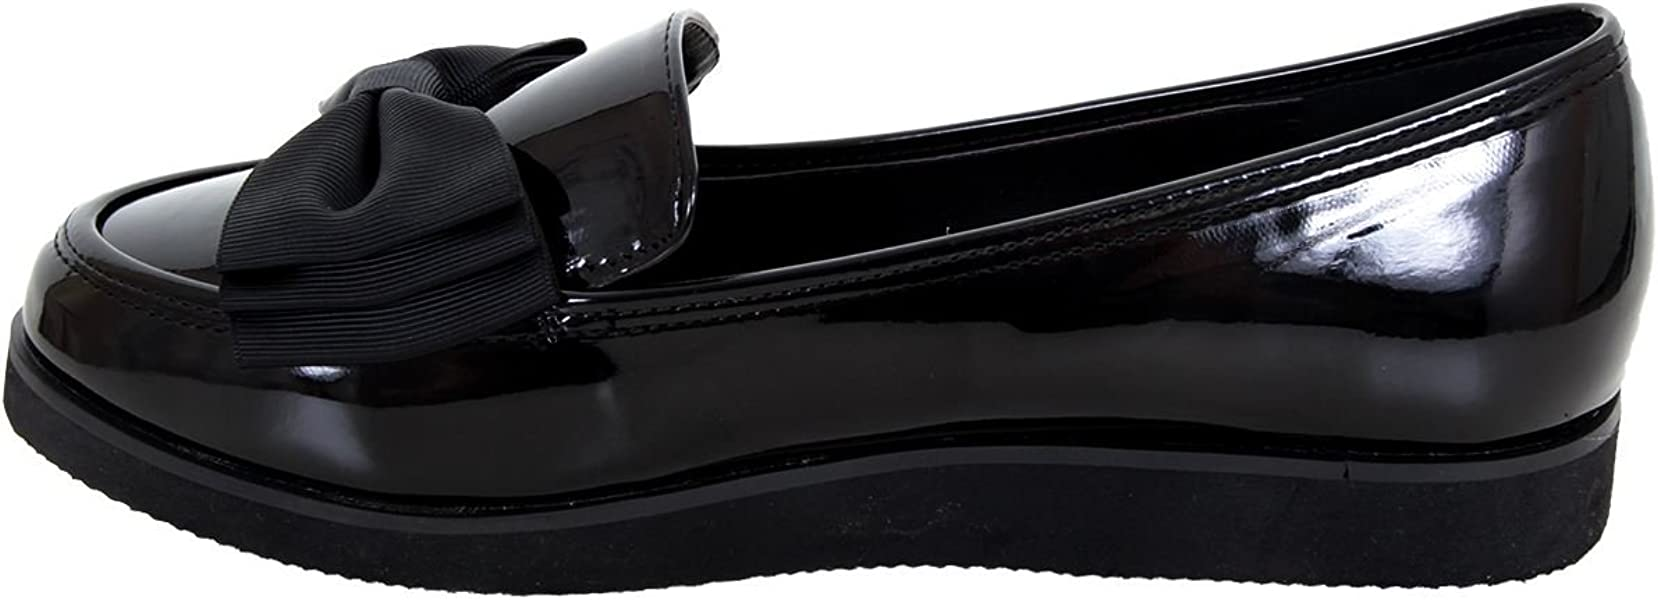 137eab15072 Fantasia Boutique ® Ladies Loafers Chunky Sole Creeper School Dolly Work  Bow Accent Patent Shoes